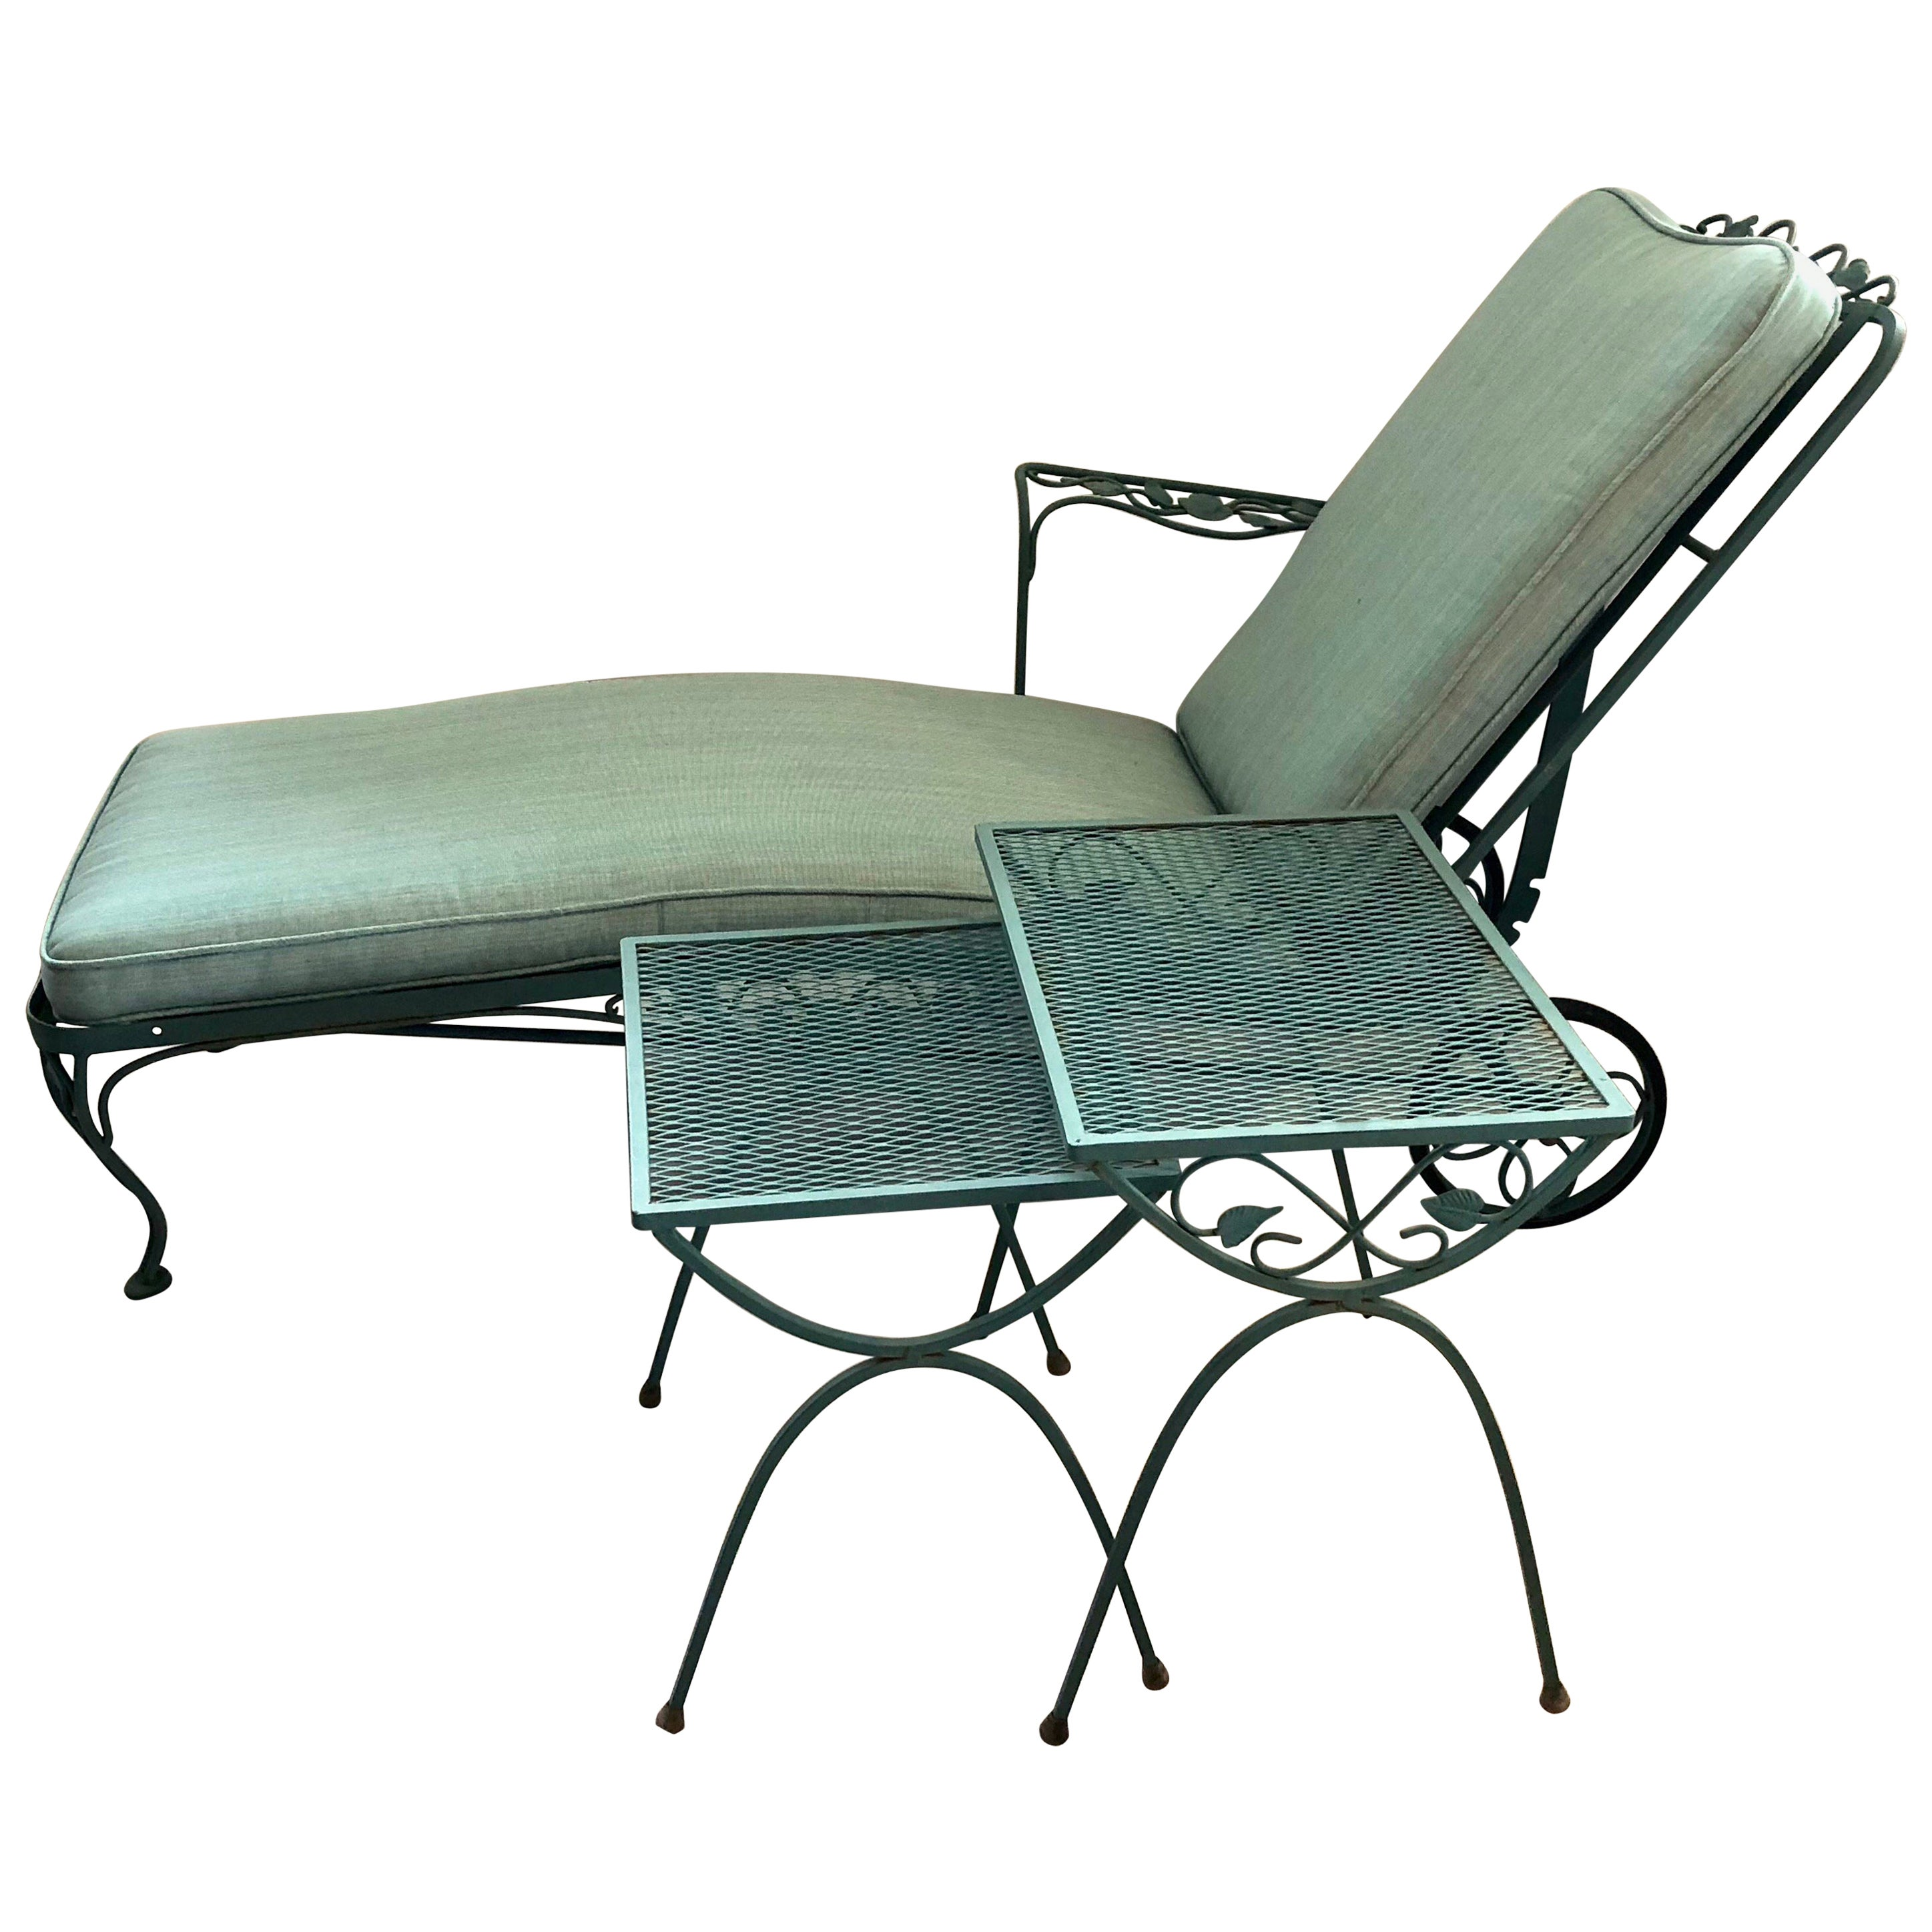 Green wrought iron patio furniture Coloured Metal Russell Woodard Green Wrought Iron Chaise Longue Chair And End Tables At 1stdibs 1stdibs Russell Woodard Green Wrought Iron Chaise Longue Chair And End